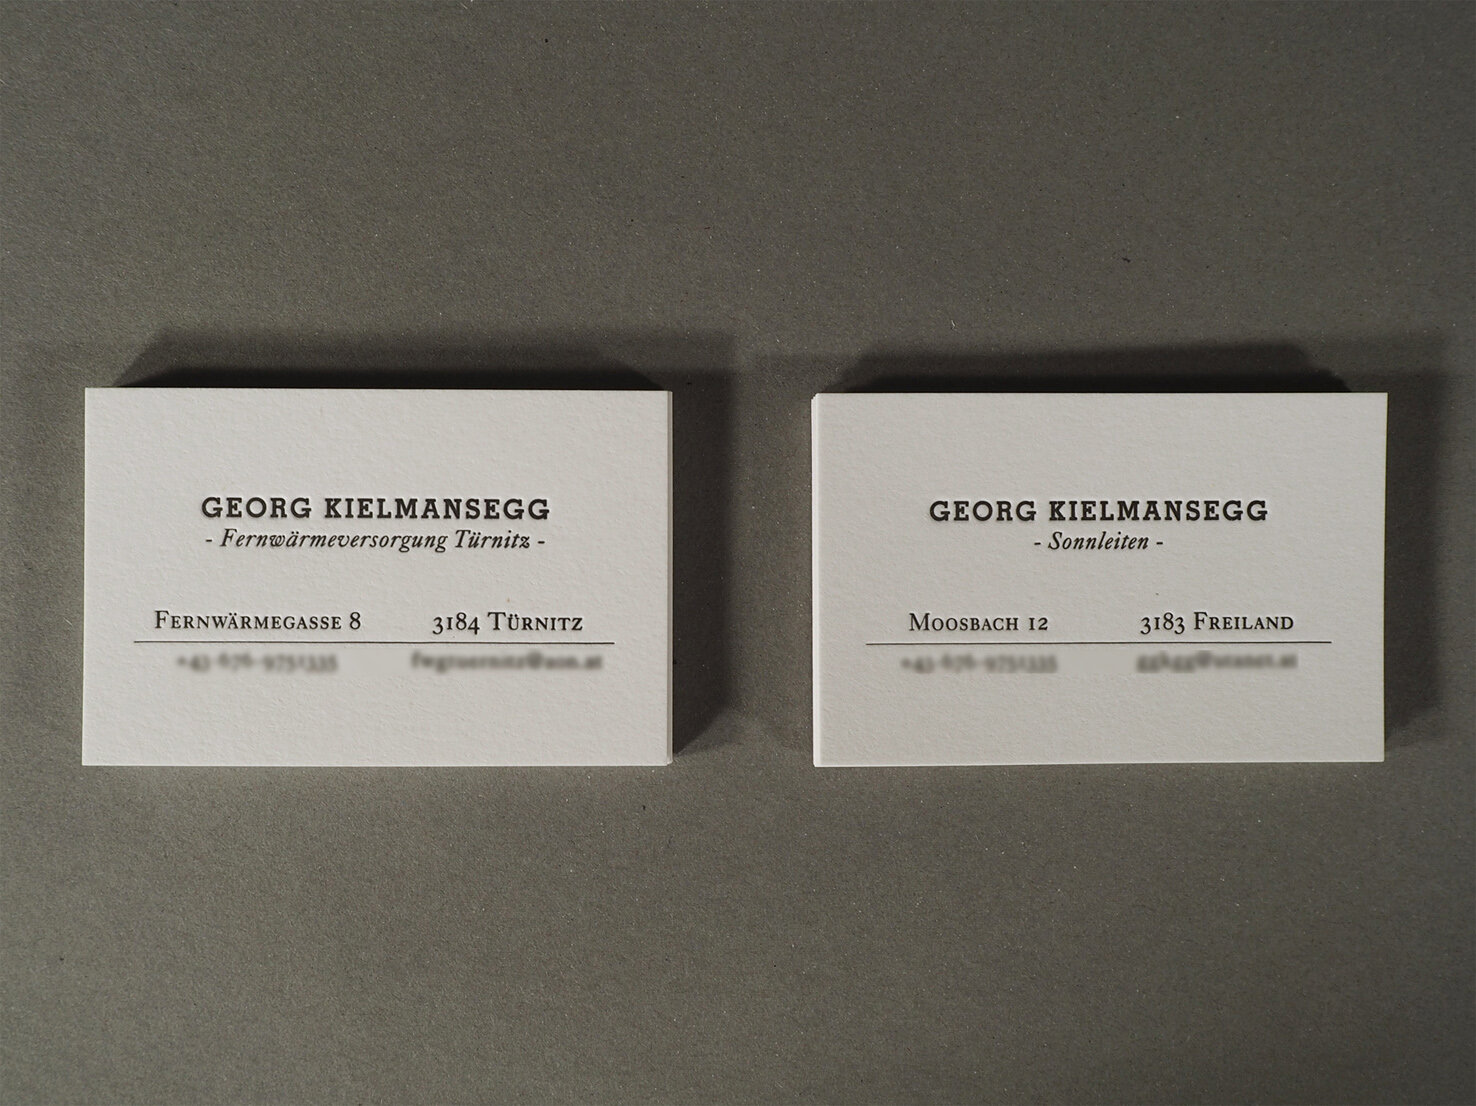 Private and company business cards